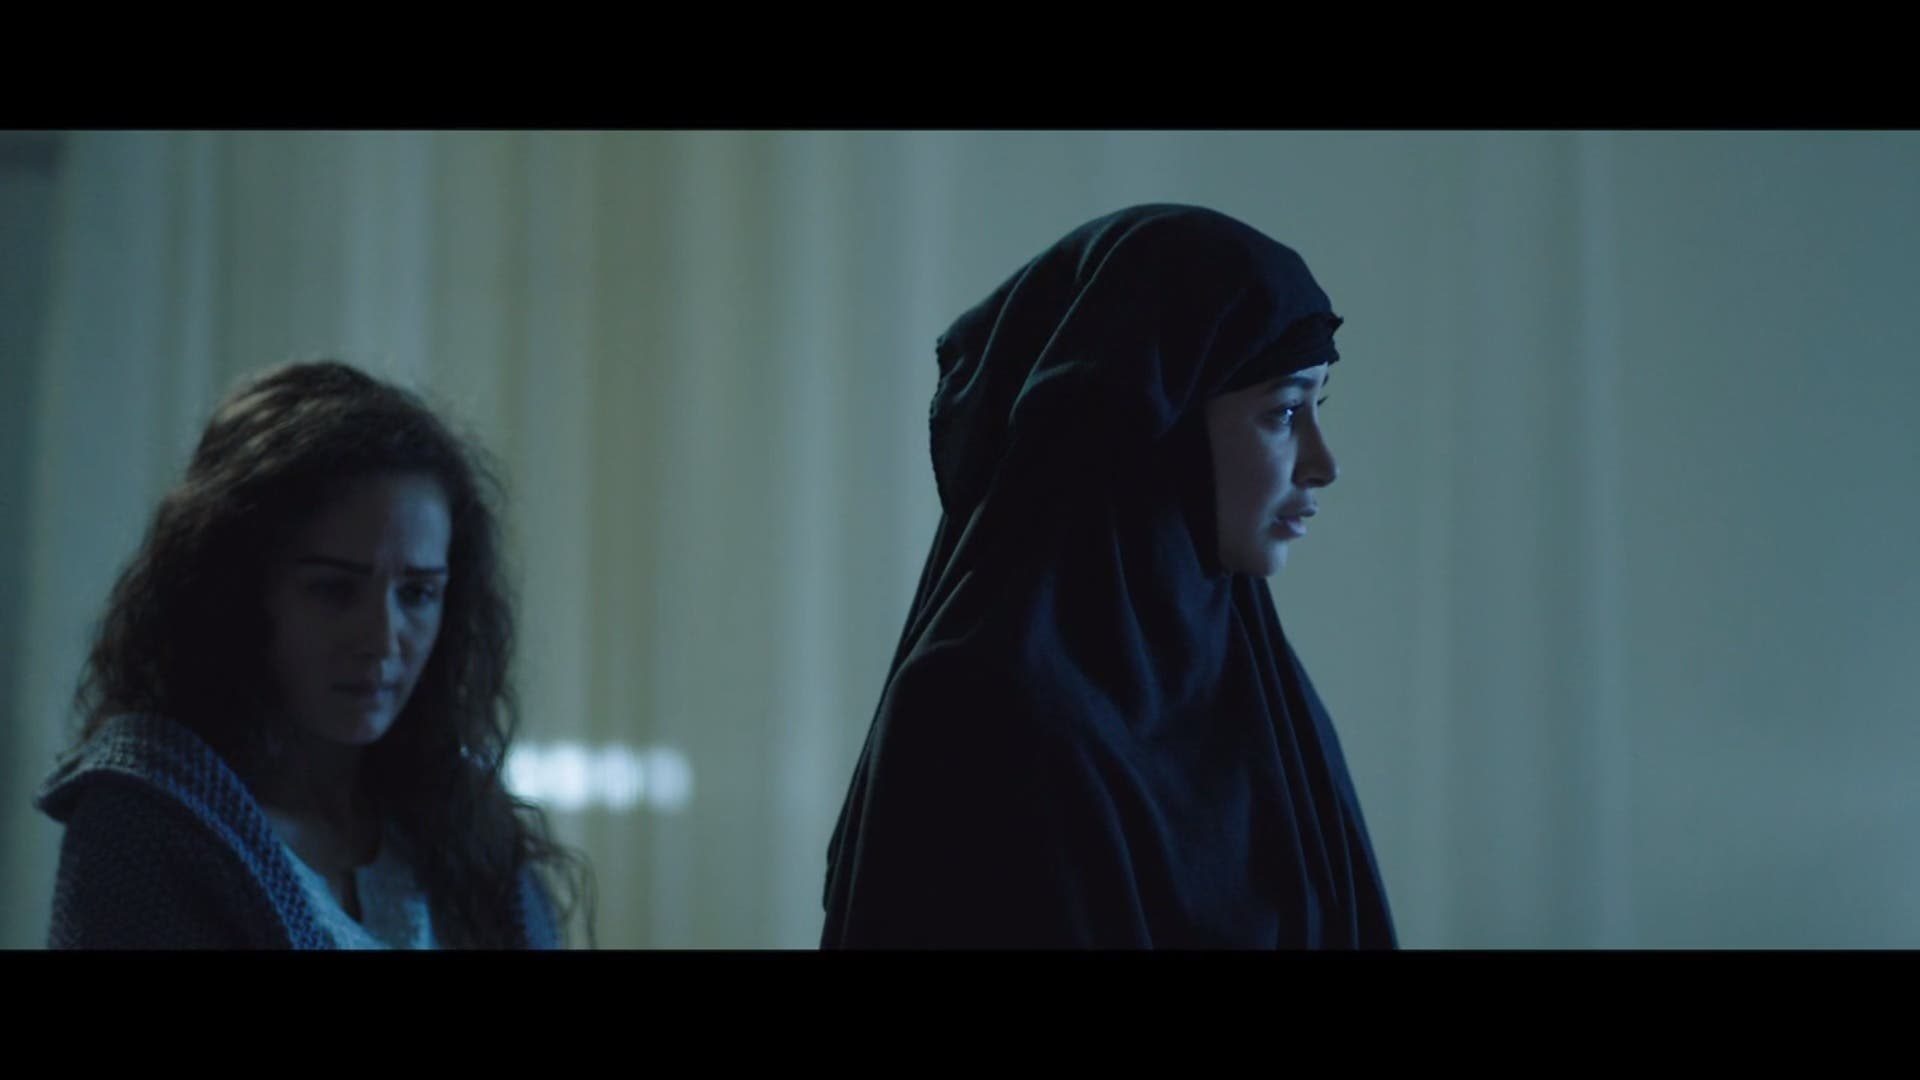 Gulf actresses get threats from ISIS for roles in 'Black Crows' Ramadan series